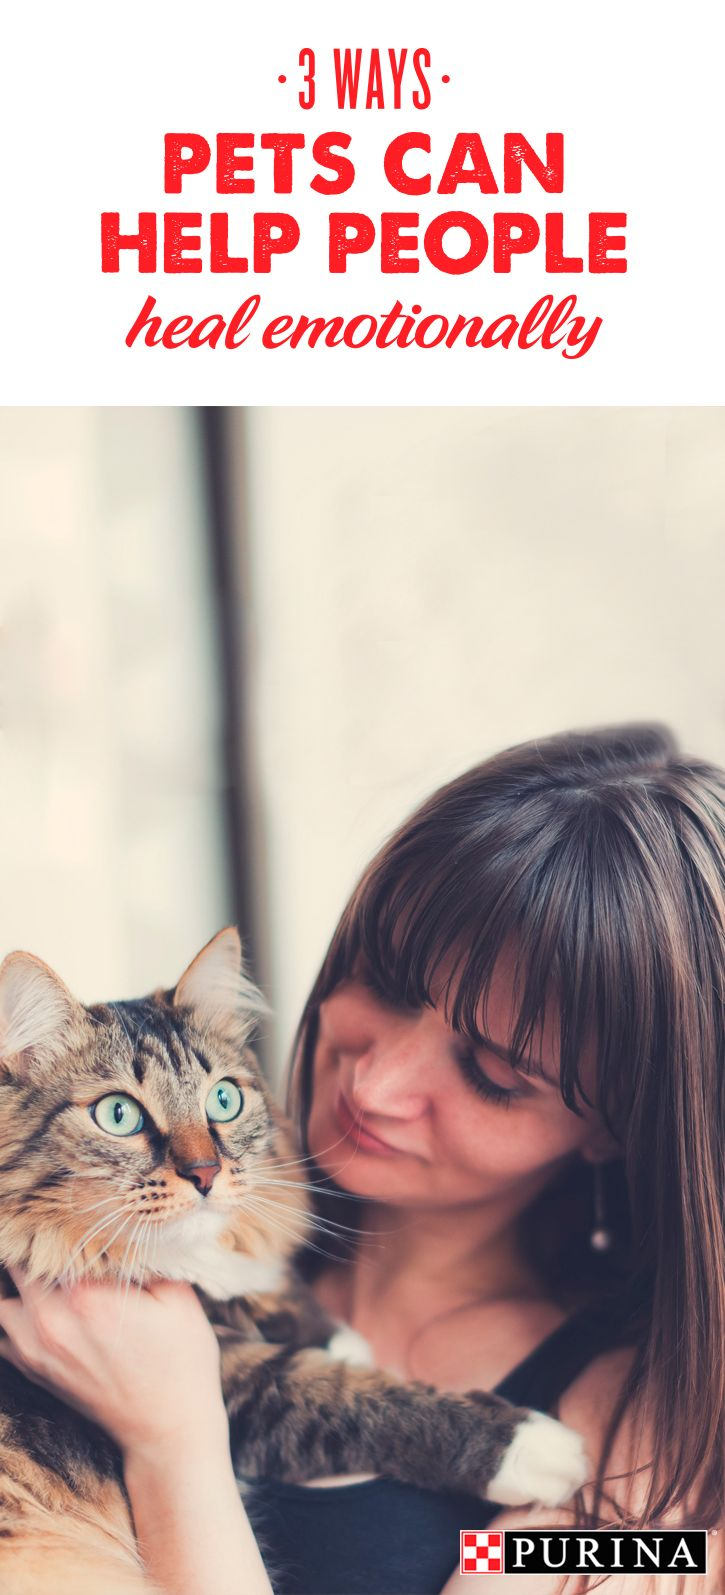 Did you know? Many domestic violence victims stay in abusive situations out of fear of what would happen if they left their pets behind. Learn more about how Purina's partnership with Urban Resource Institute is helping domestic violence survivors & pets heal together at Purina.com